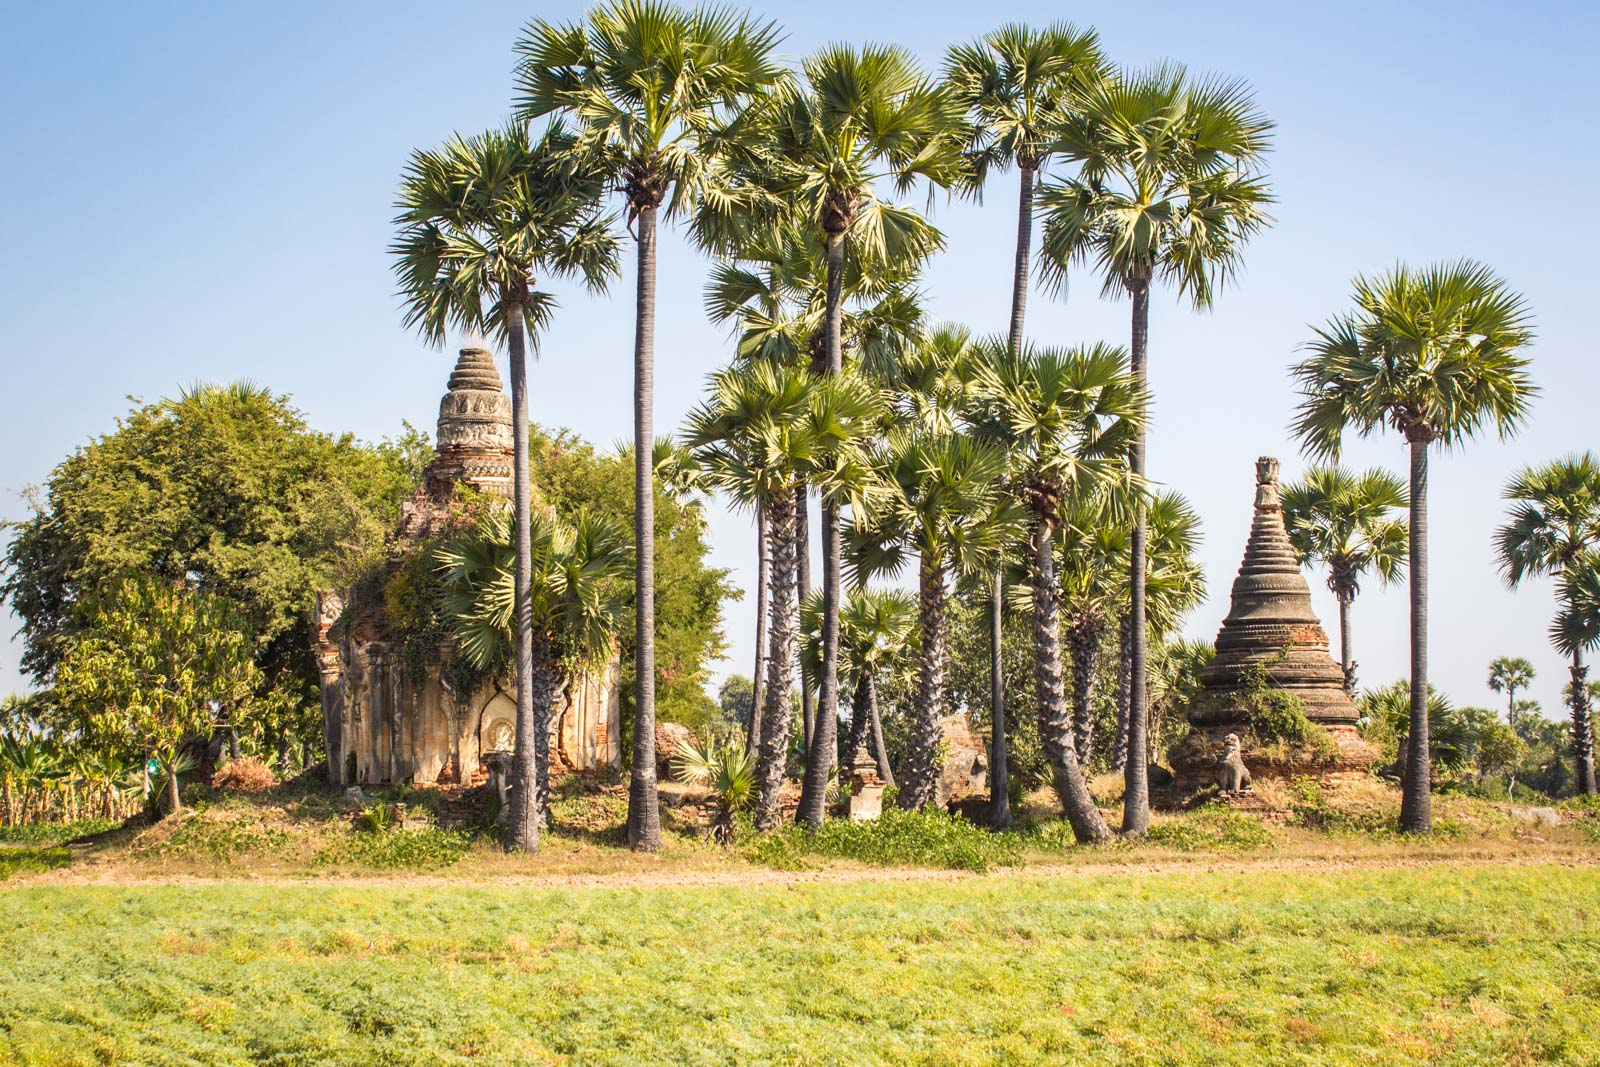 Inwa near Mandalay, Myanmar